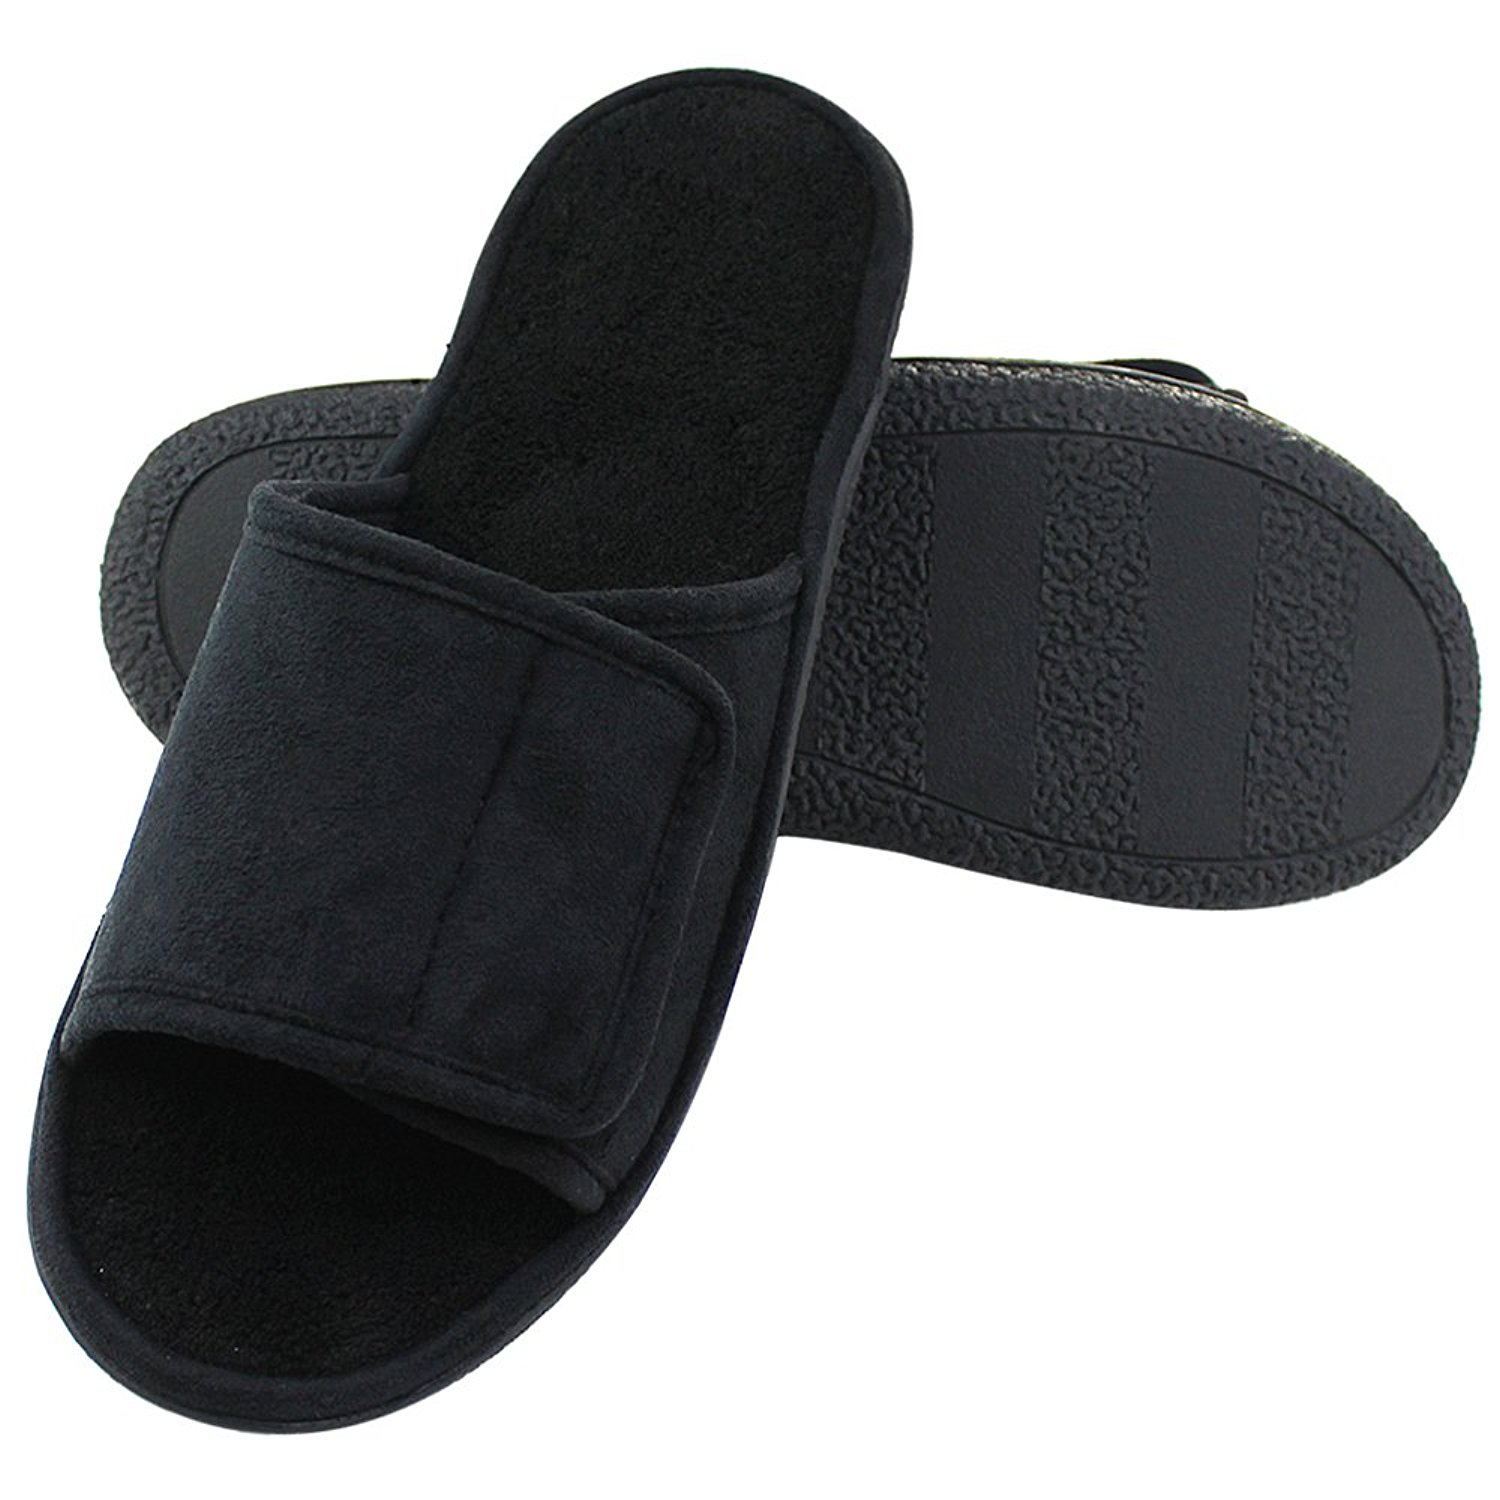 fbf207cc4c72e2 Get Quotations · Magtoe Men Velcro Indoor Slippers Faux Suede Adjustable Open  Toe Slipper